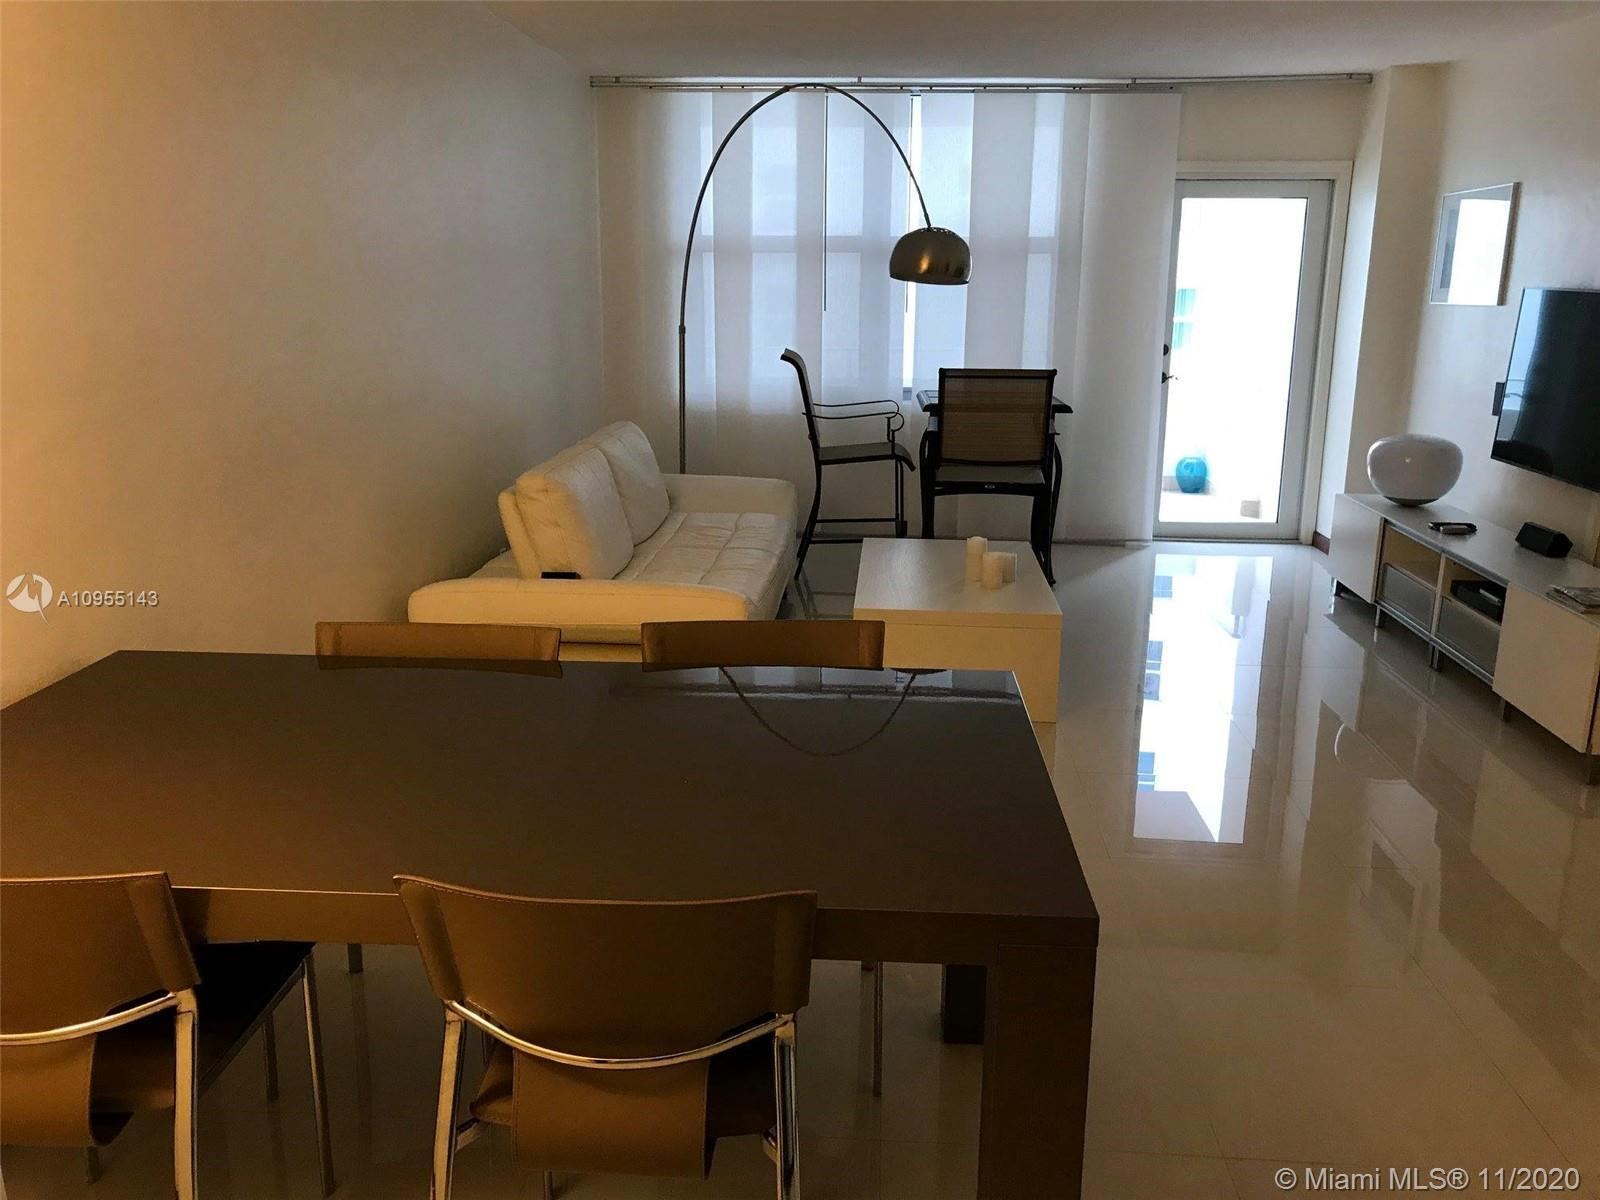 AMAZING APARTMENT !!!!! SEA AND CITY VIEW !!!! OCEAN FRONT, STEPS FROM THE MOST FAMOUS SHOPPING IN T